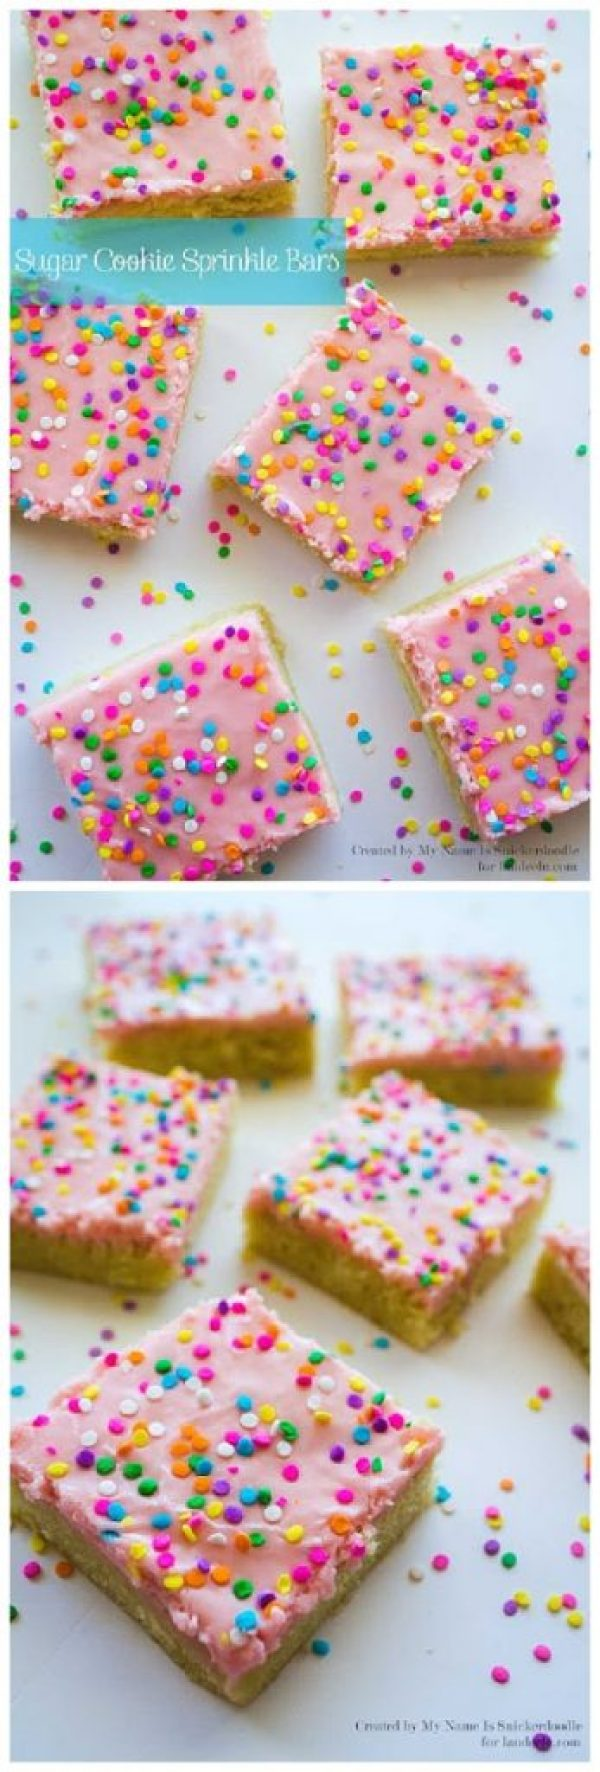 Sugar Cookie Sprinkle Bars Recipe | Landeelu